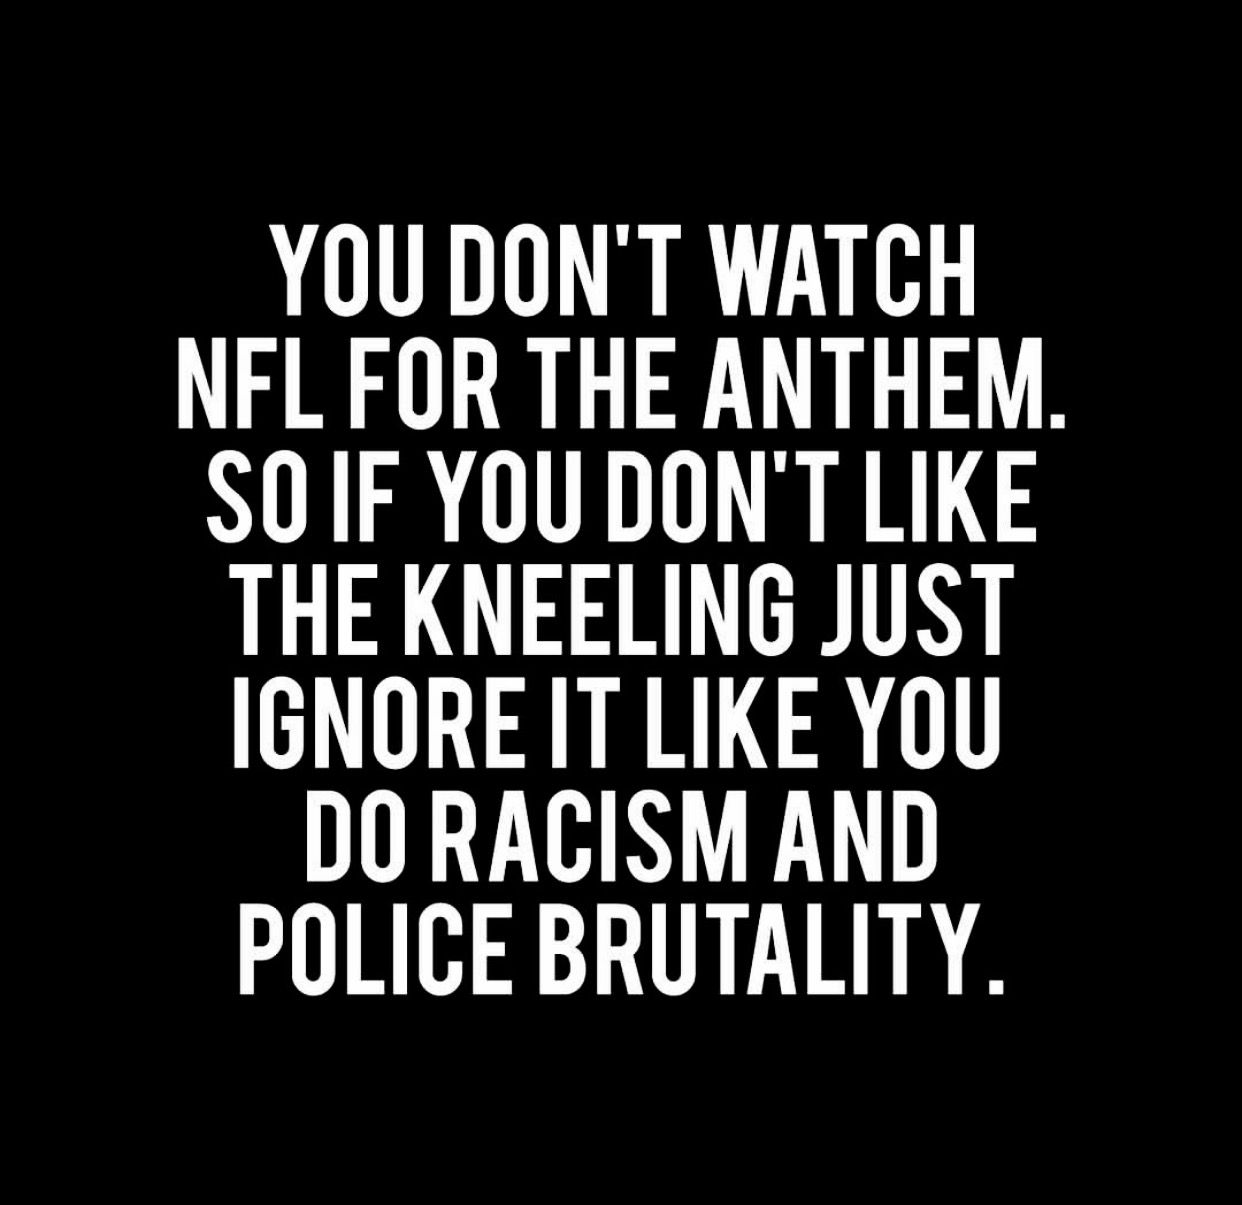 Police Brutality Quotes Pinzoe Emiko On American Politics  The Age Of Utter Insanity